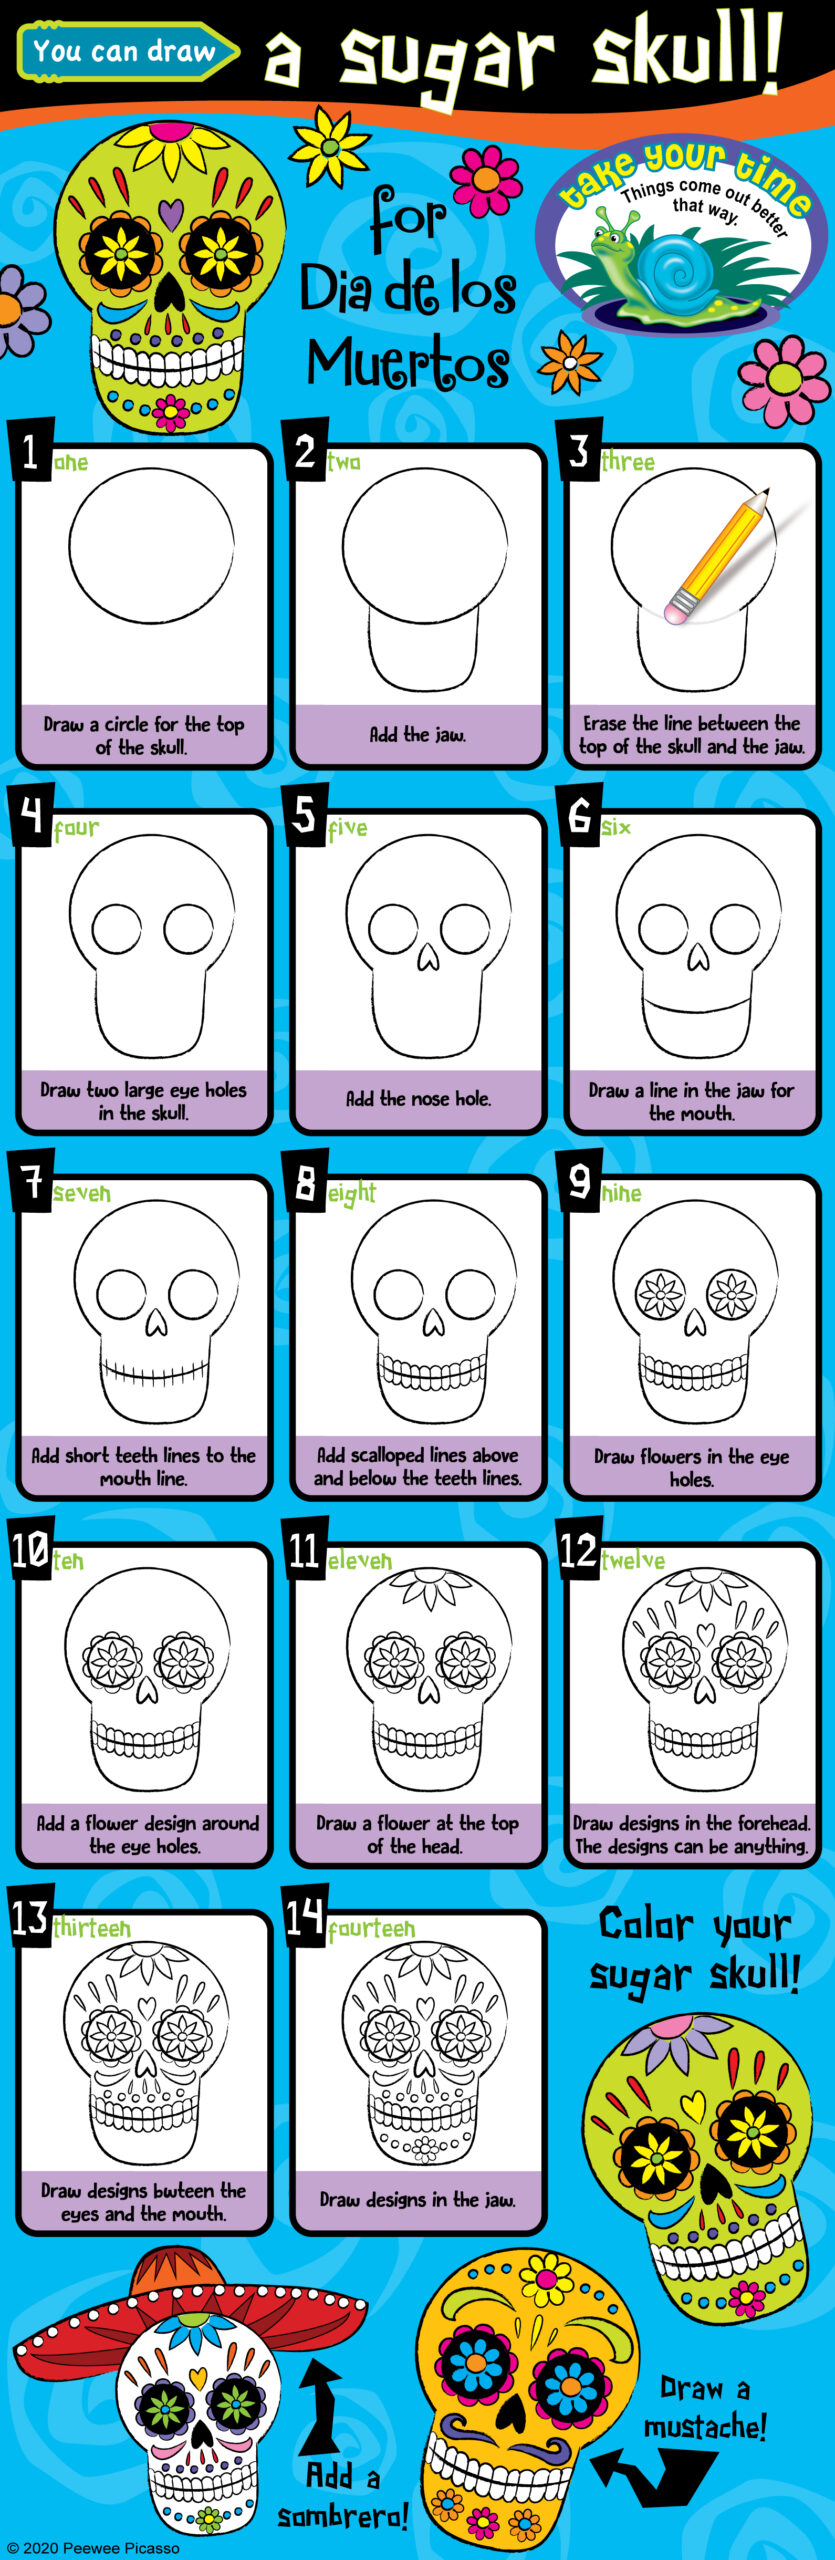 easy steps to draw a sugar skull for kids